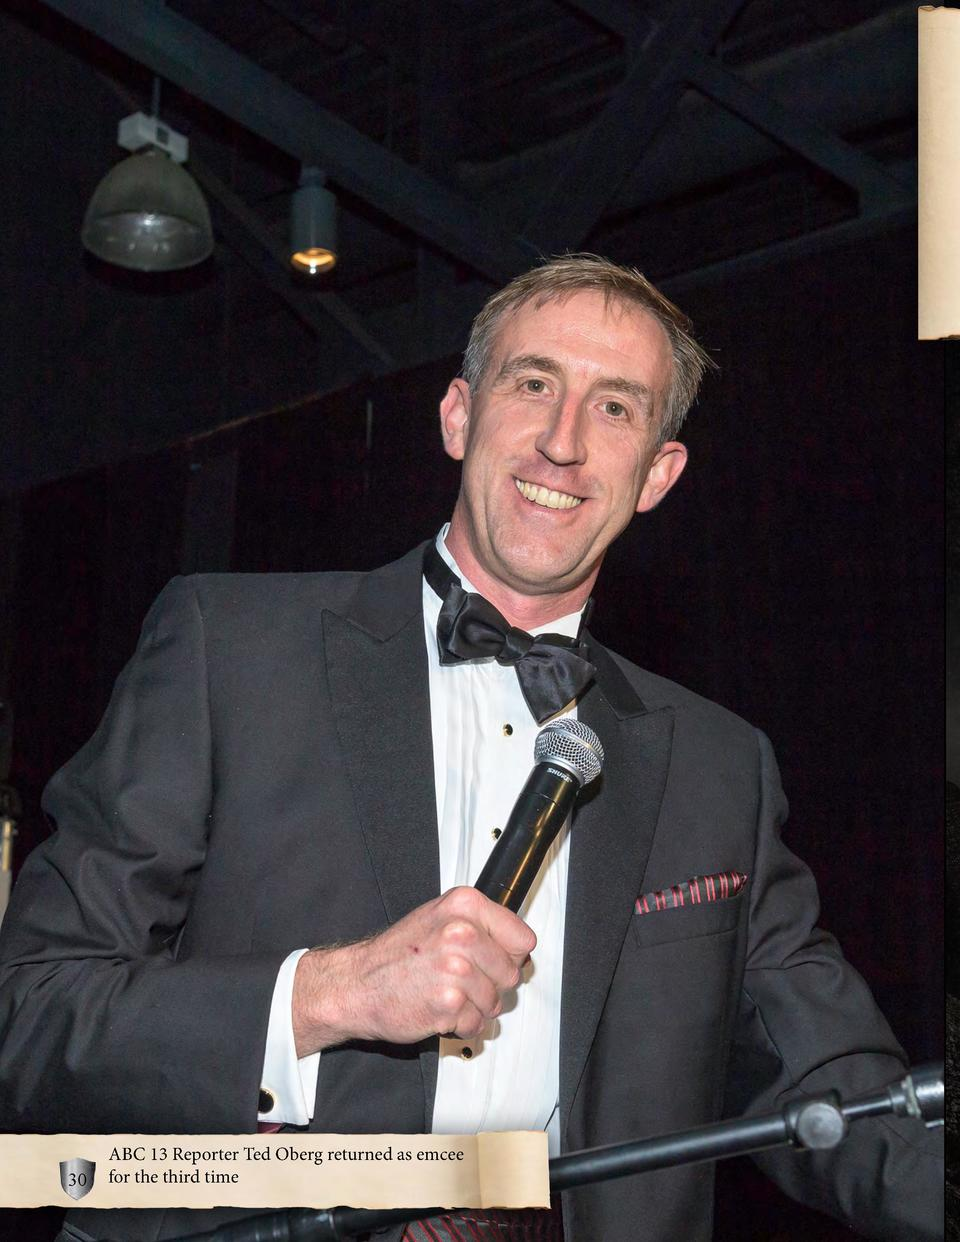 30  ABC 13 Reporter Ted Oberg returned as emcee for the third time